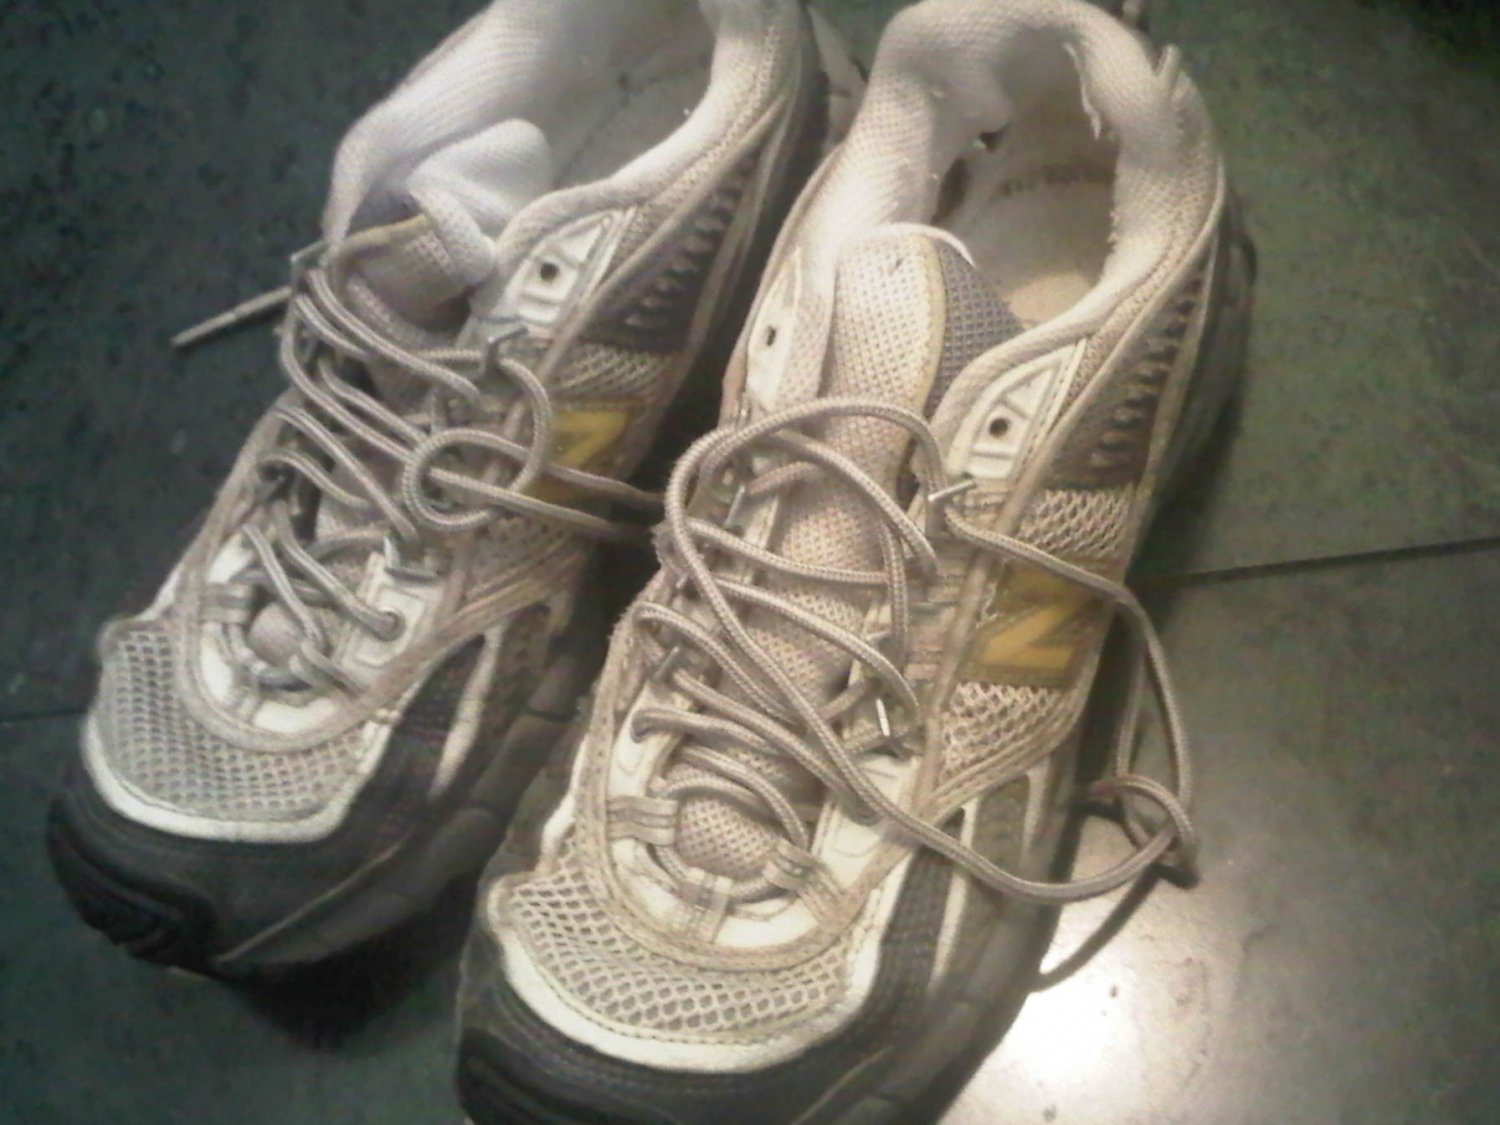 NEW BALANCE 805 YELLOW WHITE TENNIS SHOES WOMEN'S 8 CLOTHES ACCESSORY